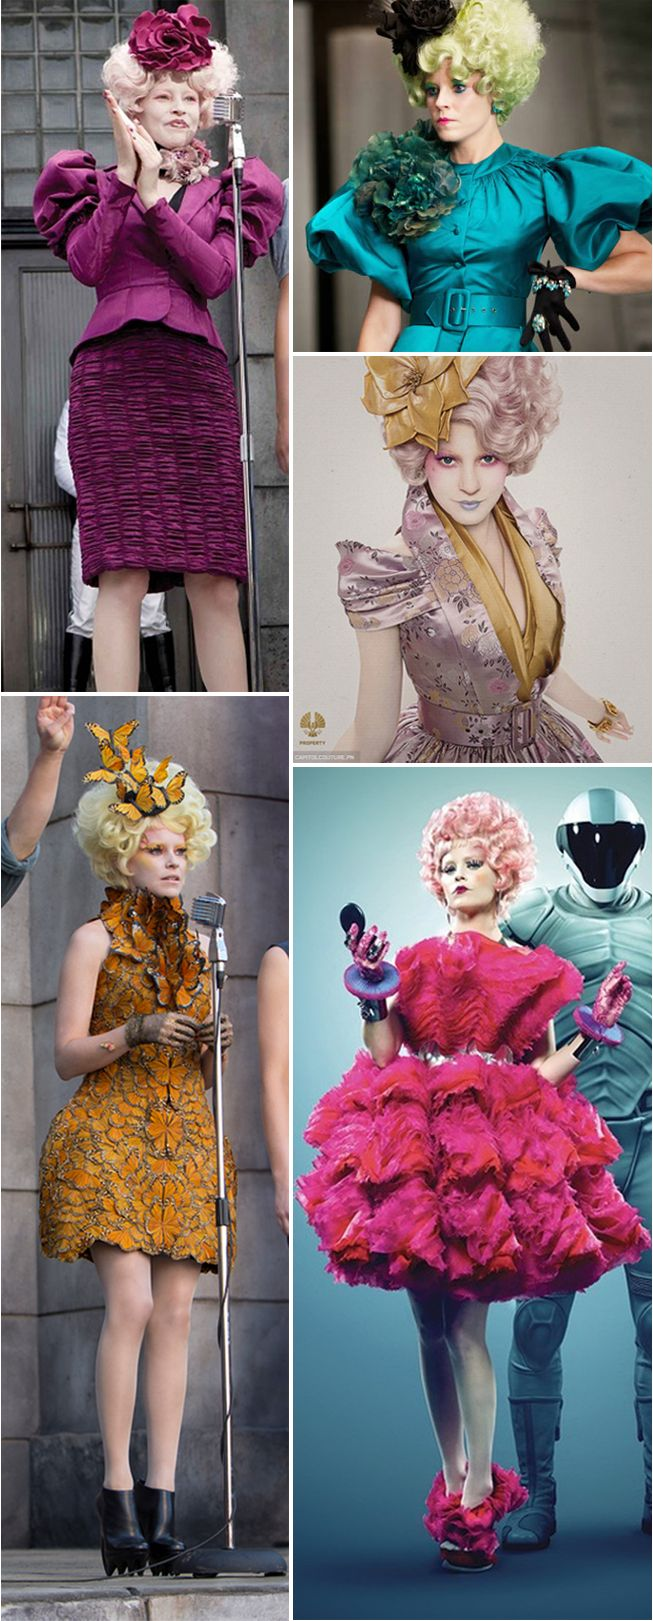 The 25+ best Effie trinket ideas on Pinterest | Effie hunger games ...